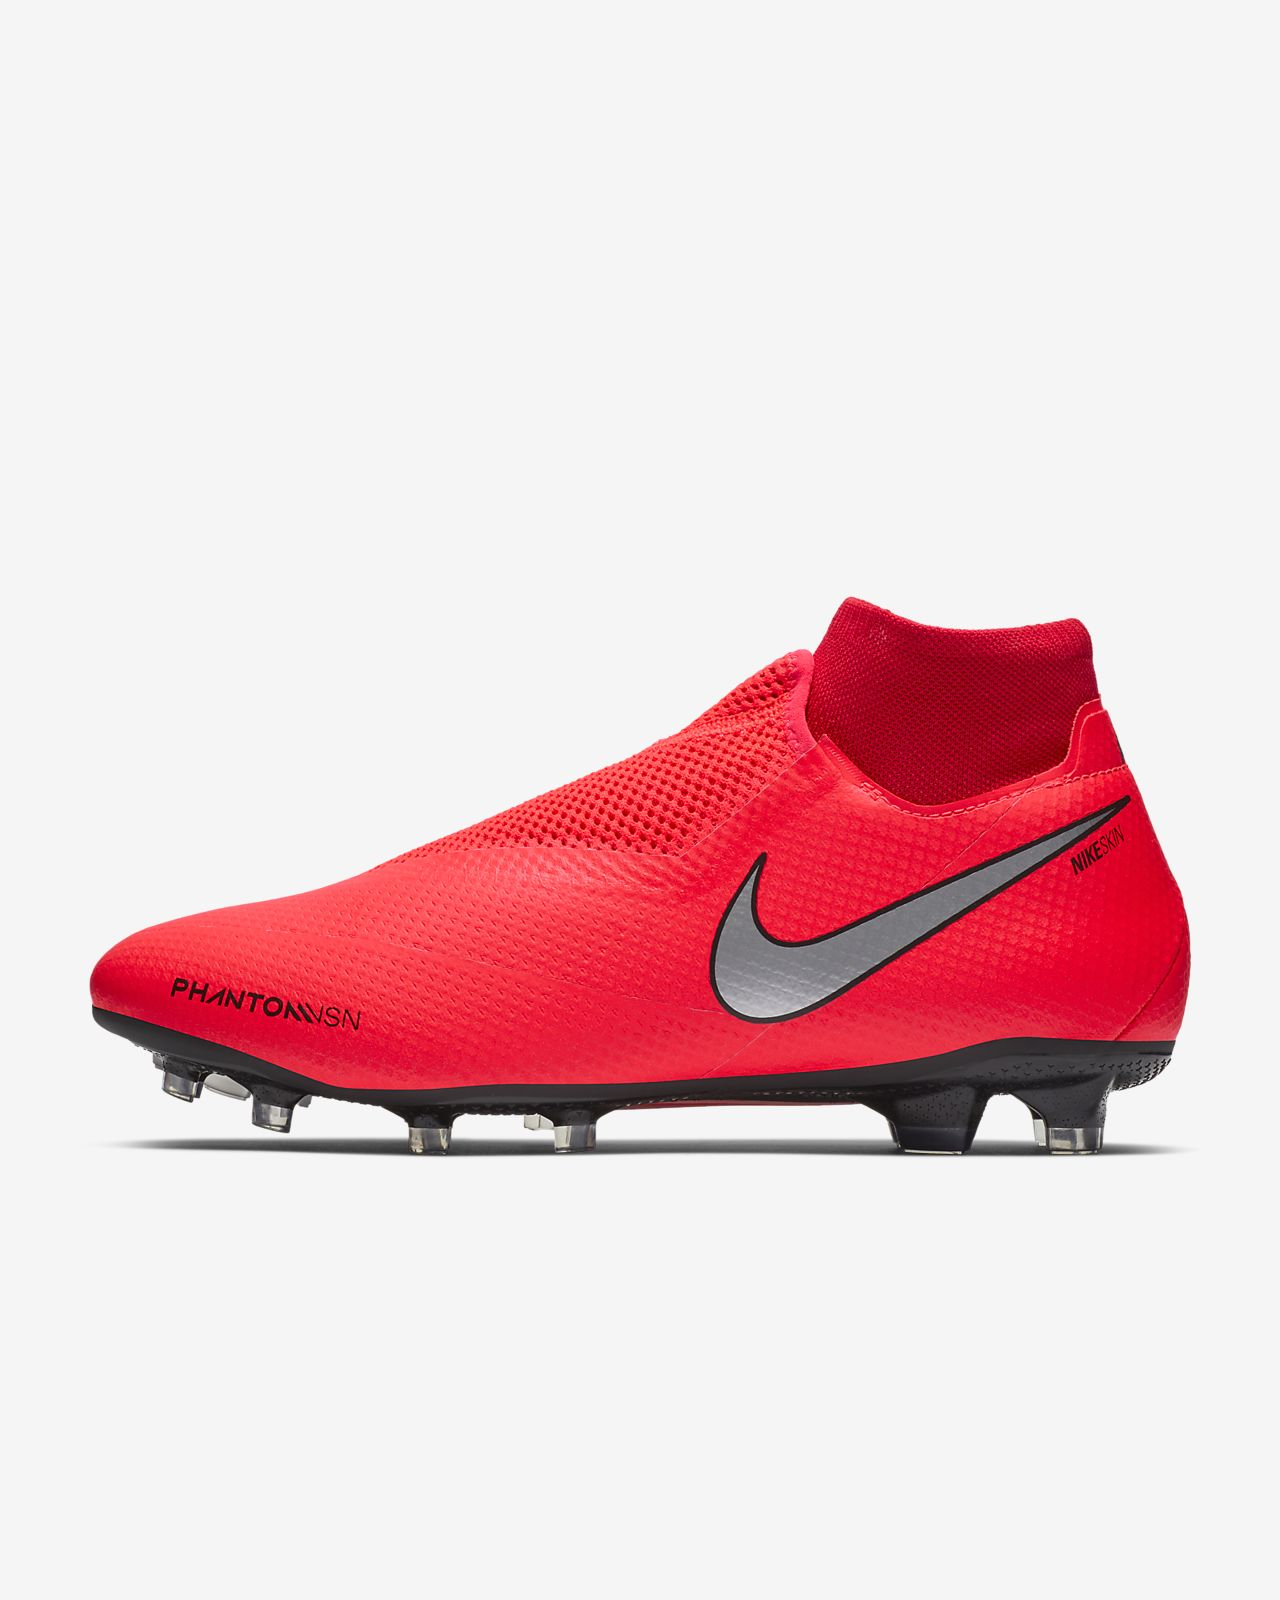 Nike PhantomVSN Pro Dynamic Fit Game Over FG Firm-Ground Football Boot